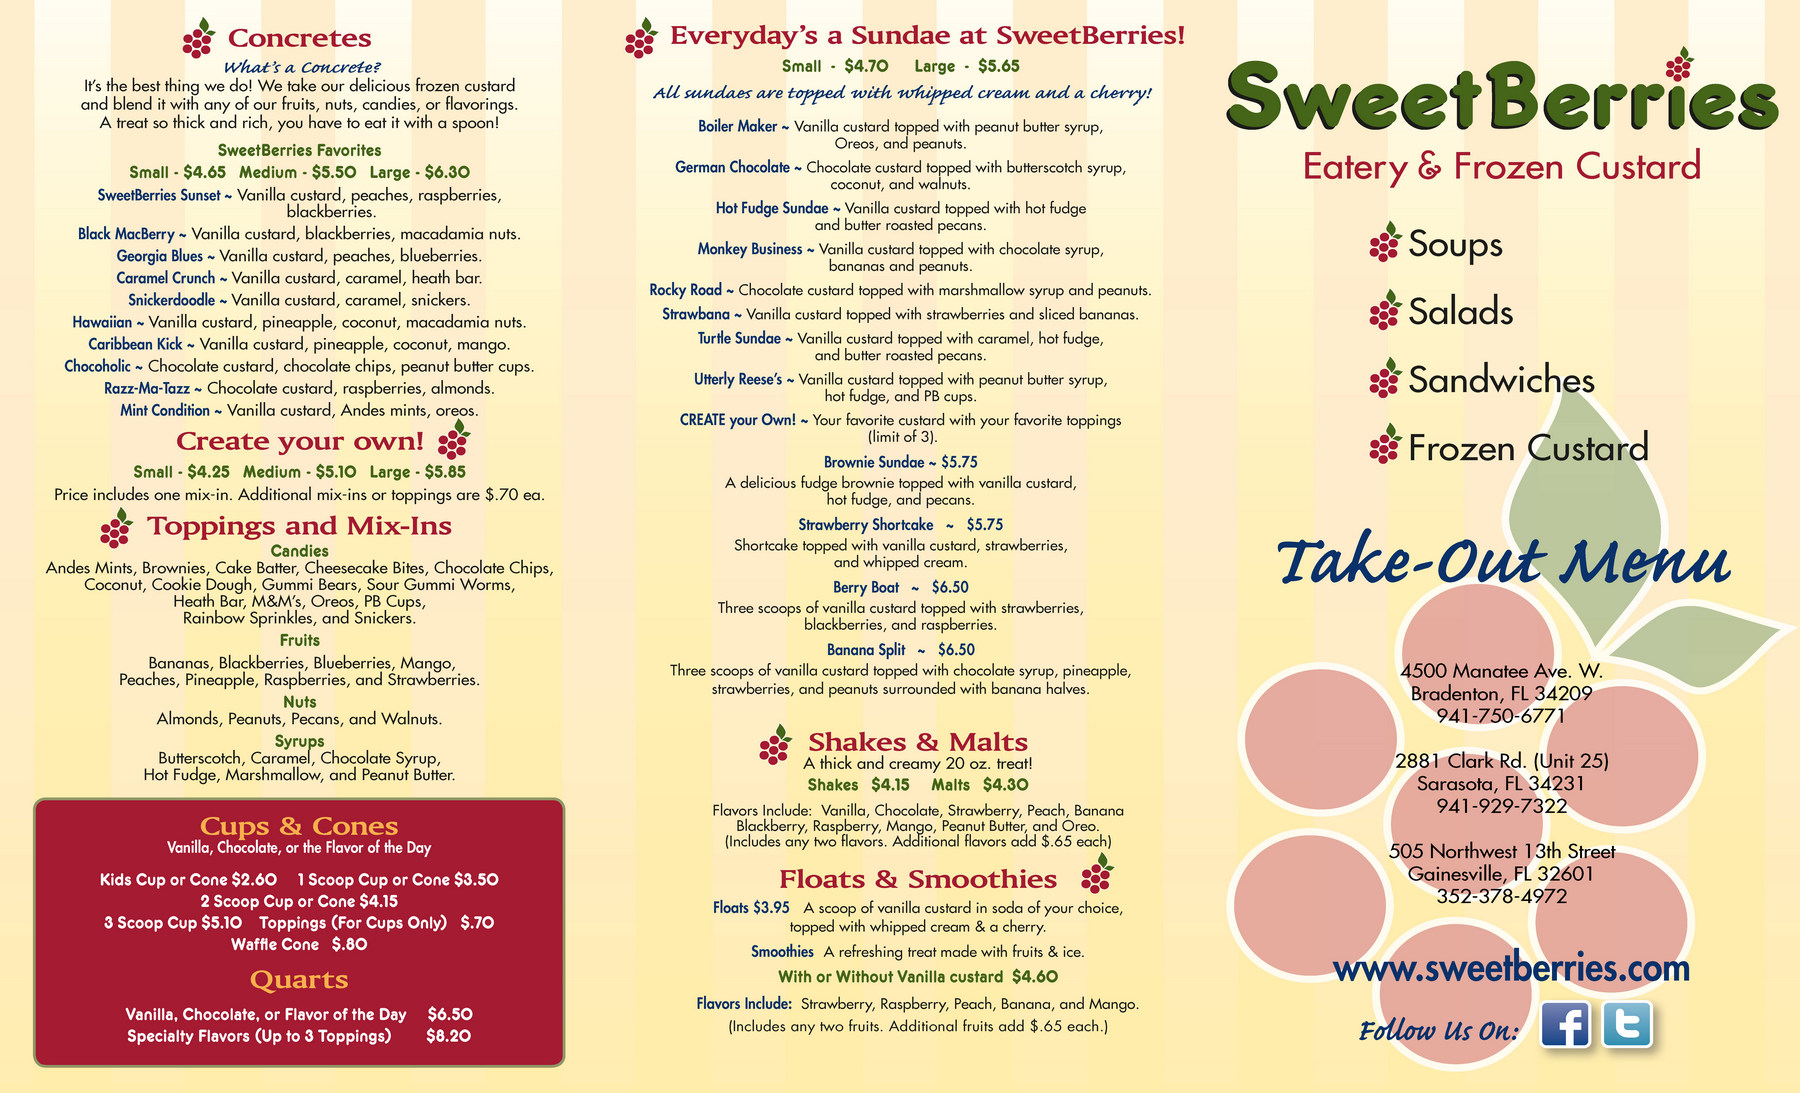 Bradenton SweetBerries Custard Menu